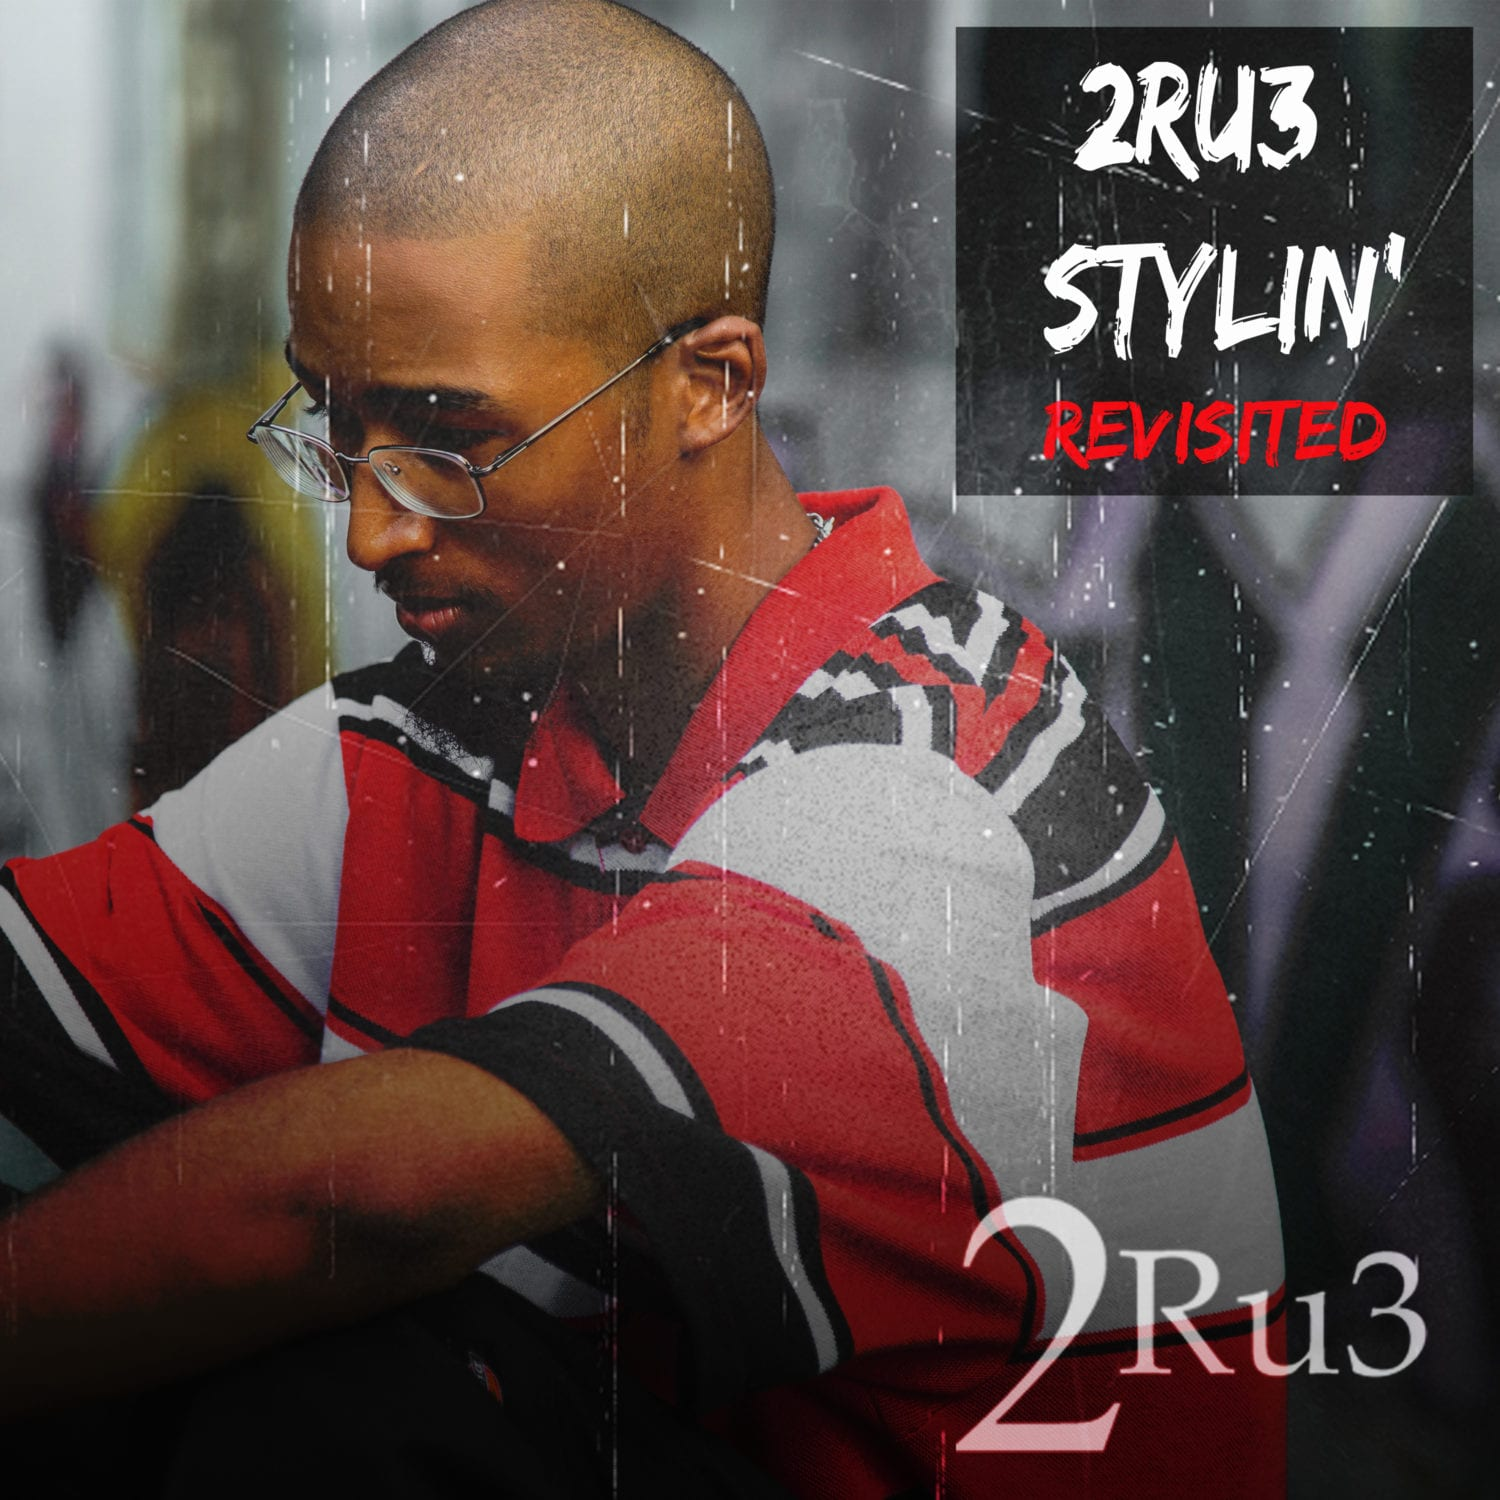 New Mixtape By 2RU3 - 2Ru3 Stylin' (Revisited)